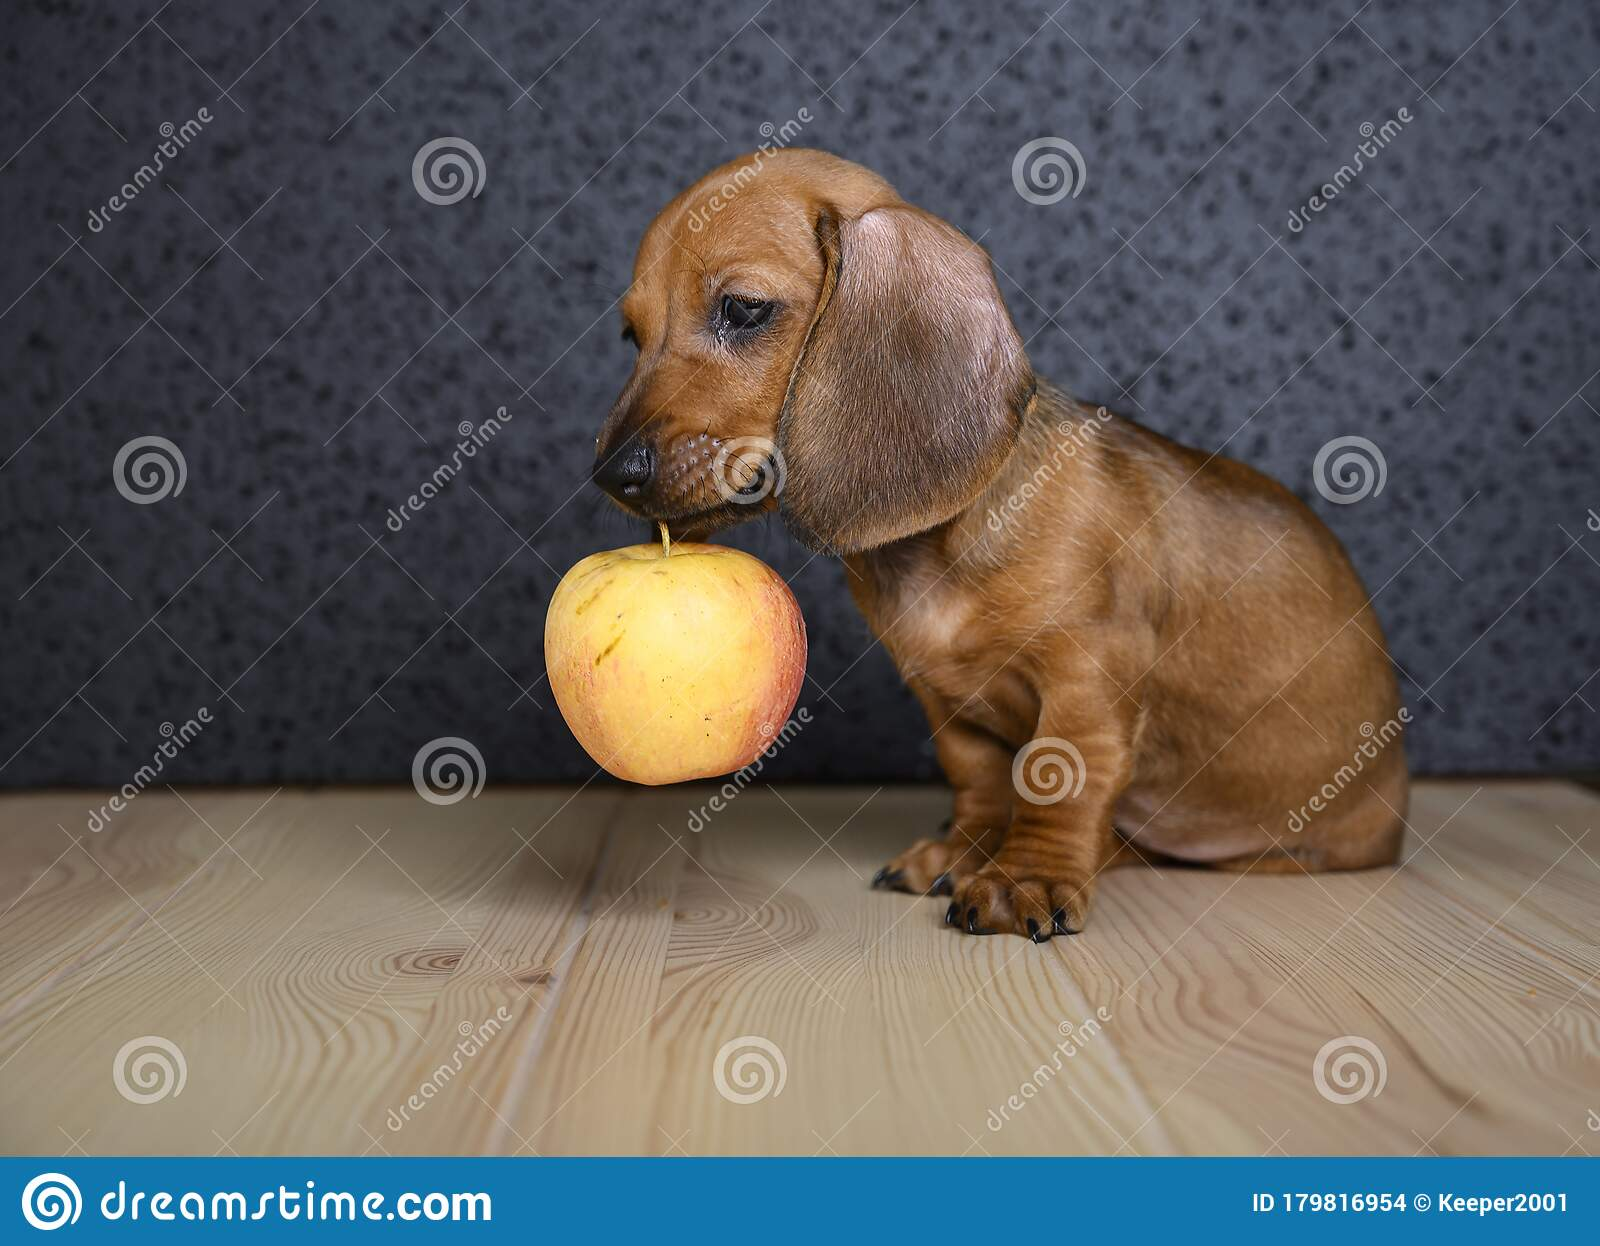 Dachshund Puppy Holds Ripe Apple In His Teeth Stock Photo Image Of Brown Plays 179816954